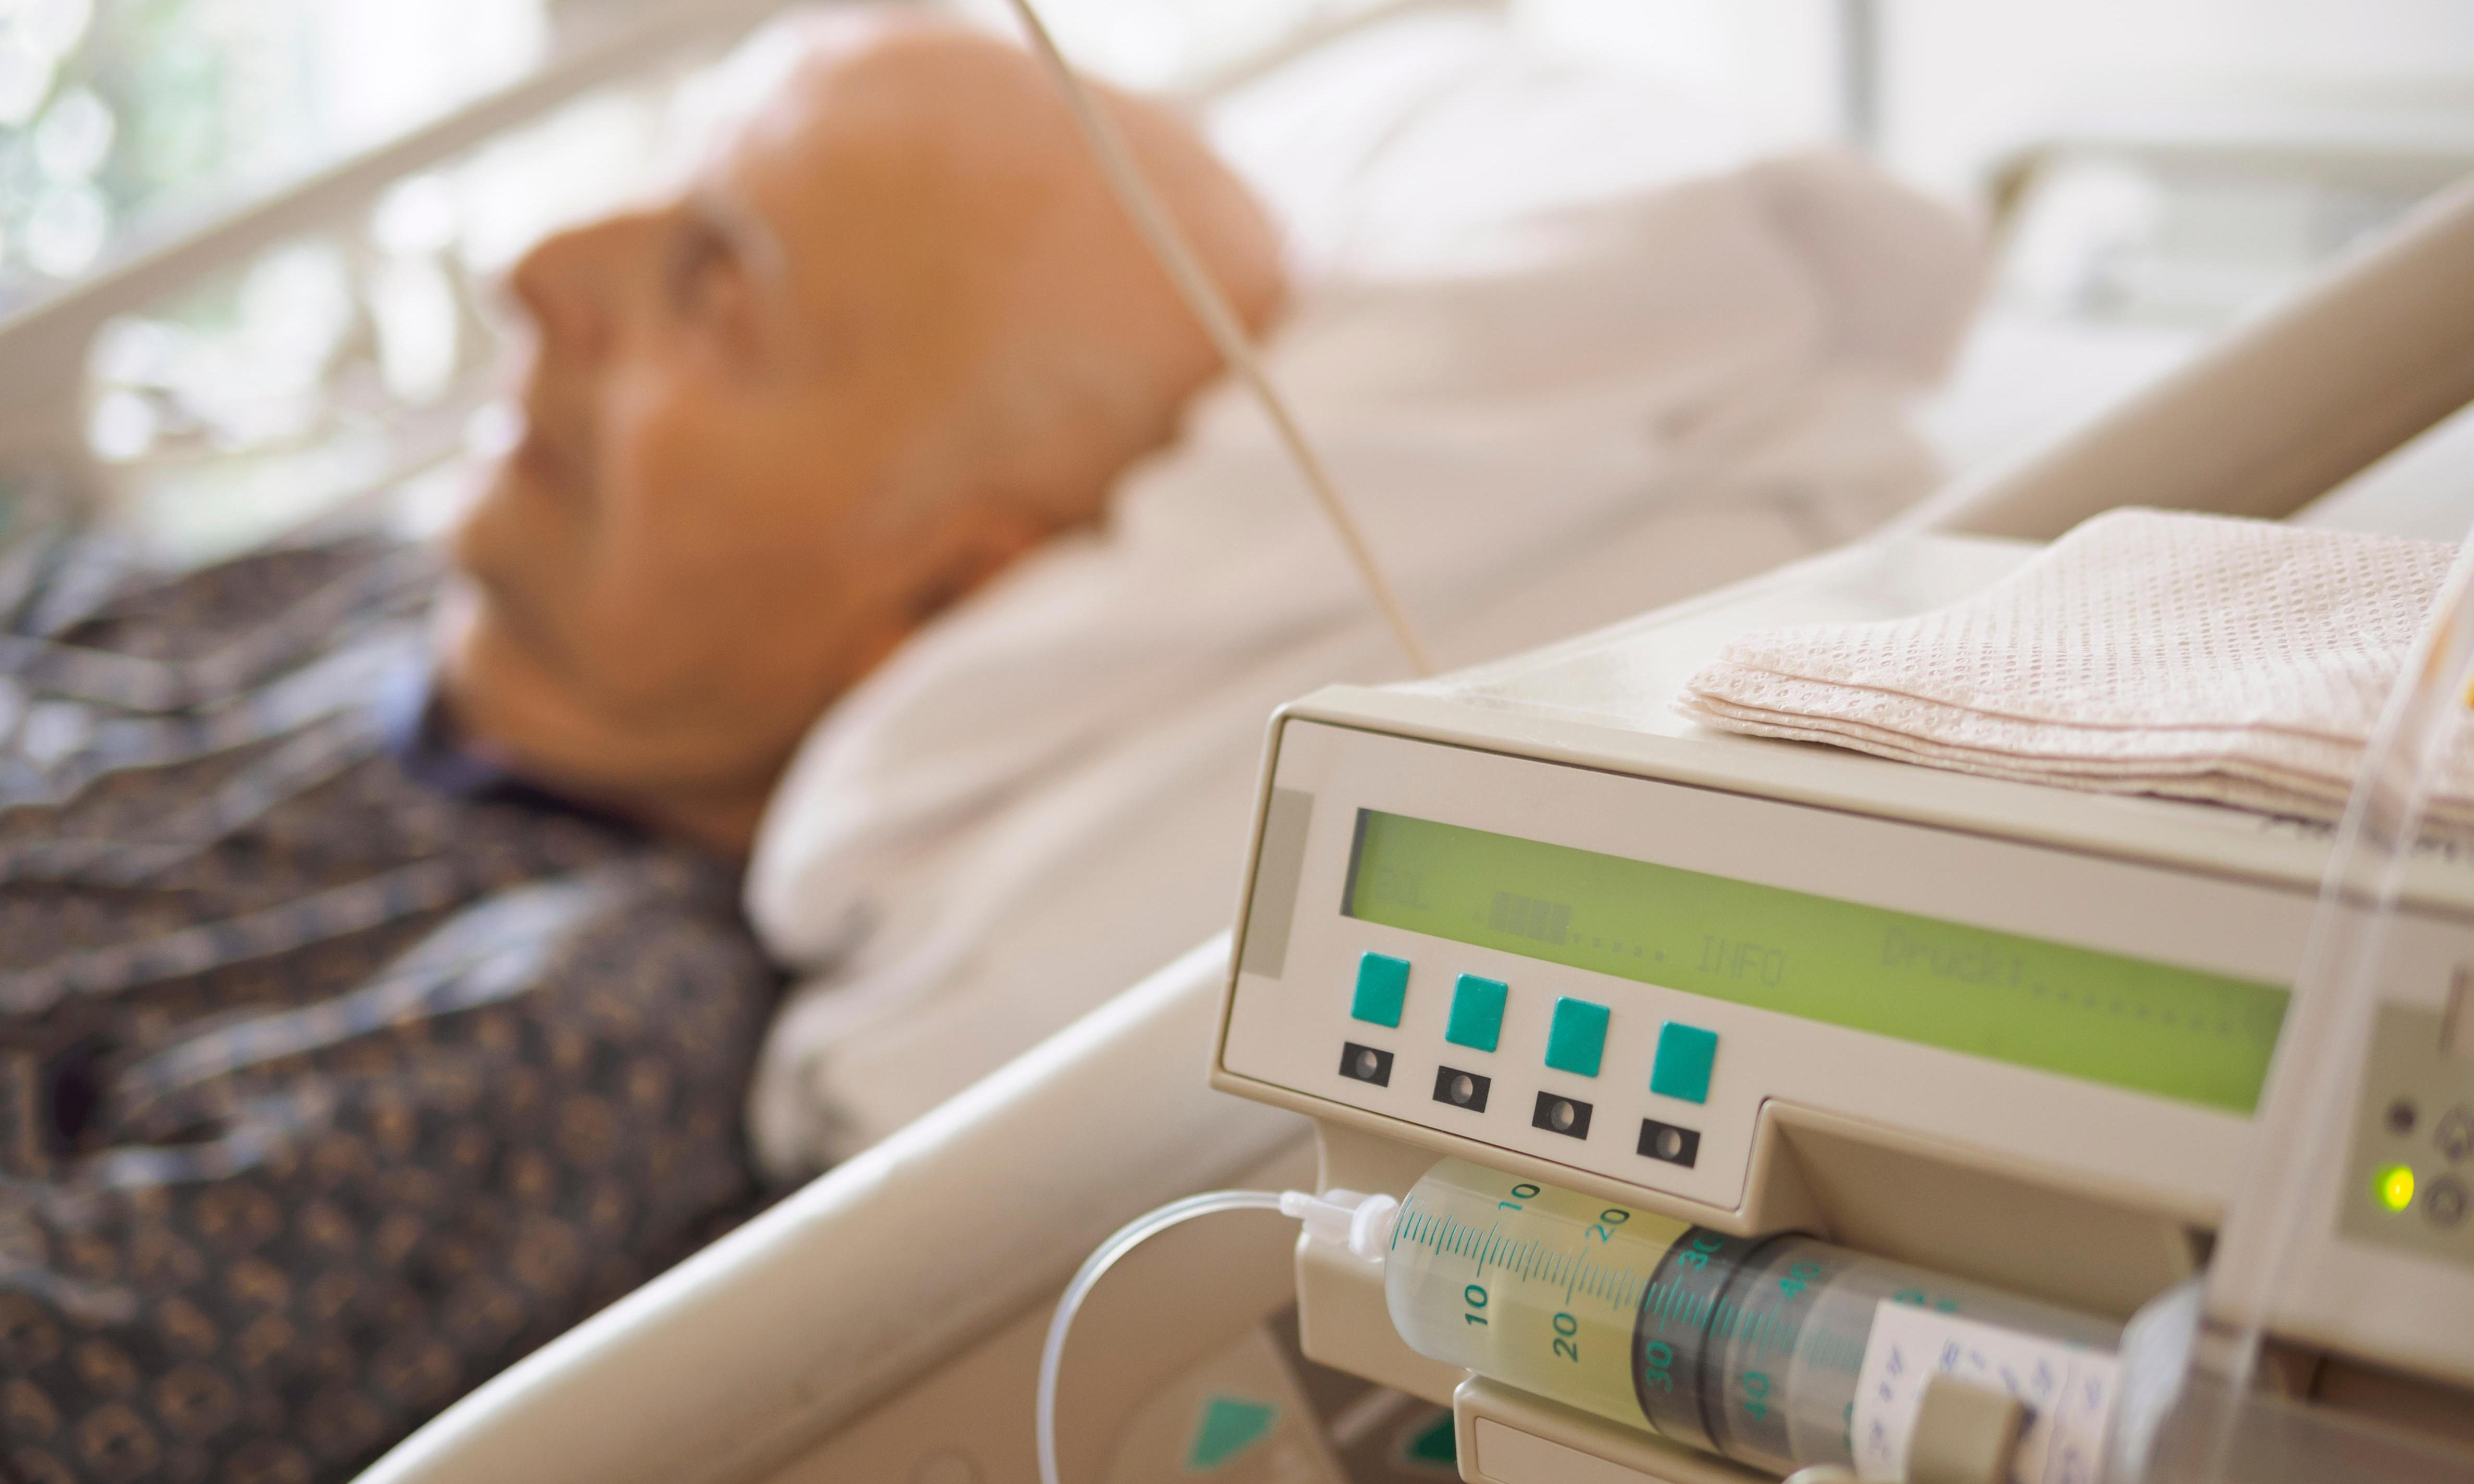 Palliative care in hospitals is inconsistent